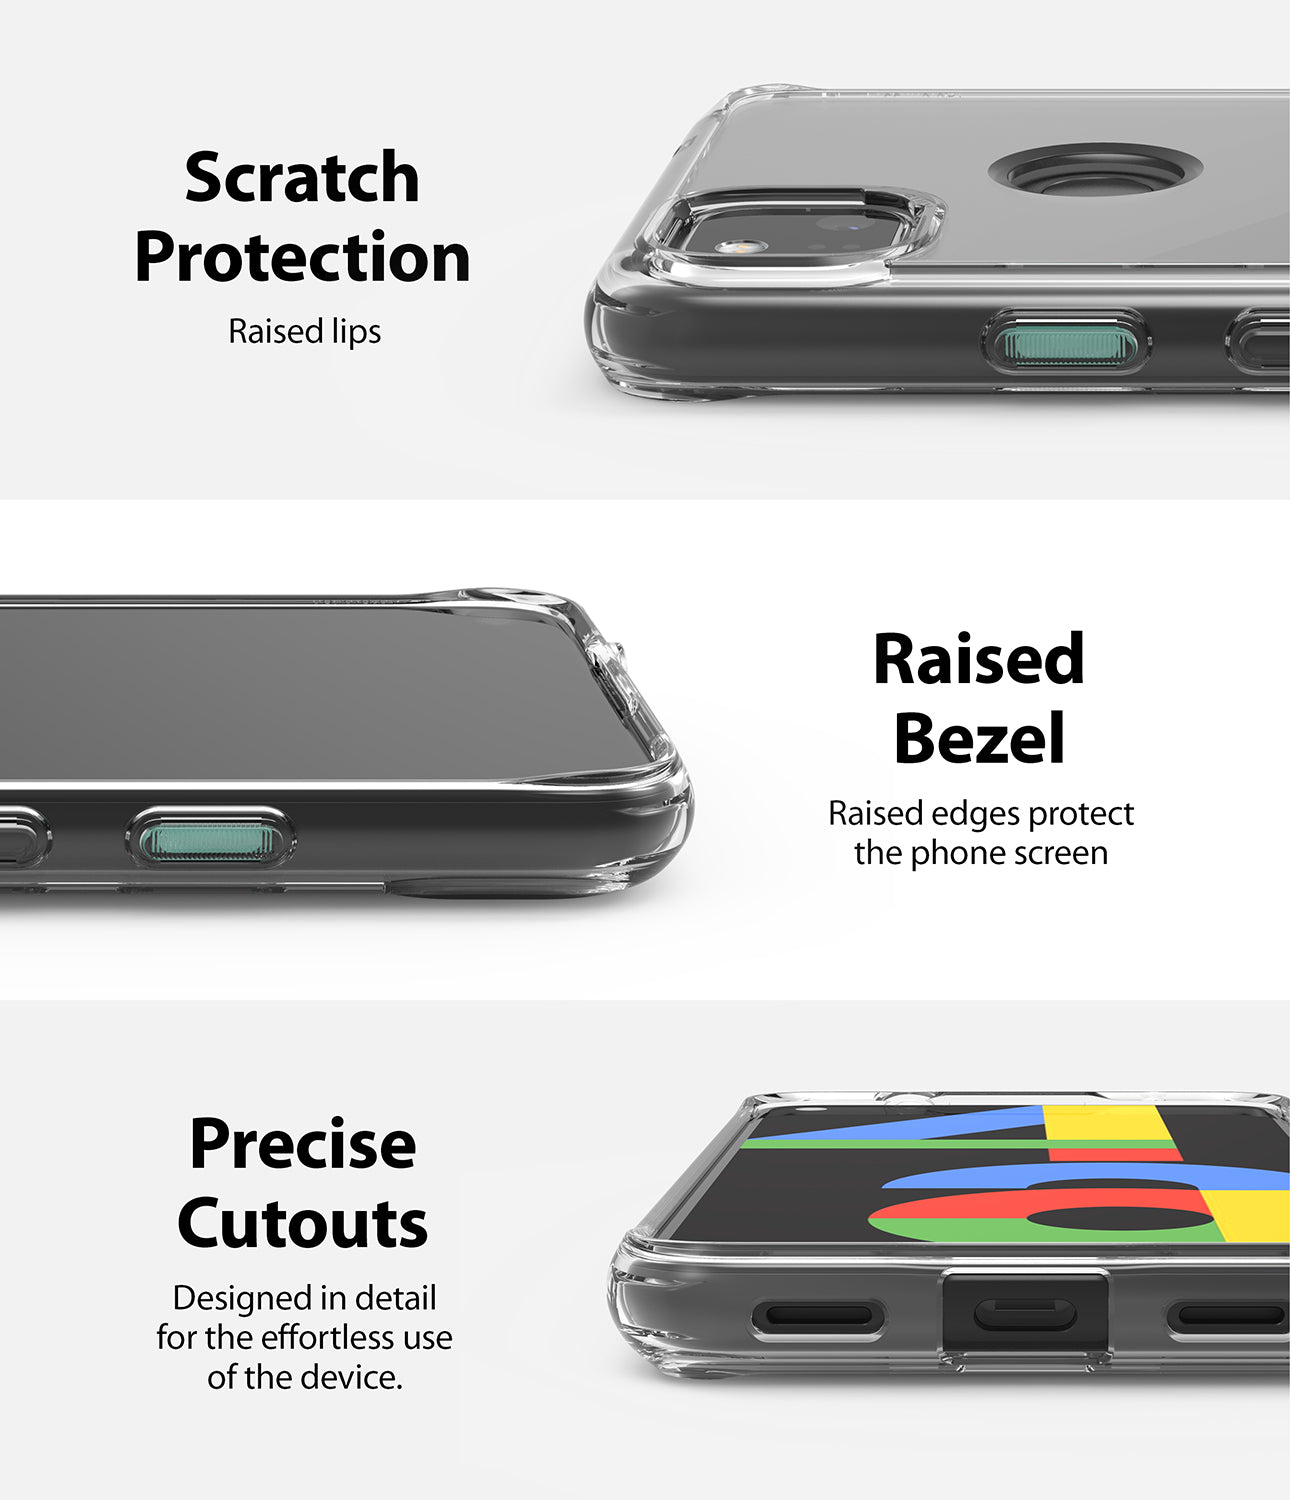 scratch protection raised lips / raised bezel to protect the phone screen / precise cutouts